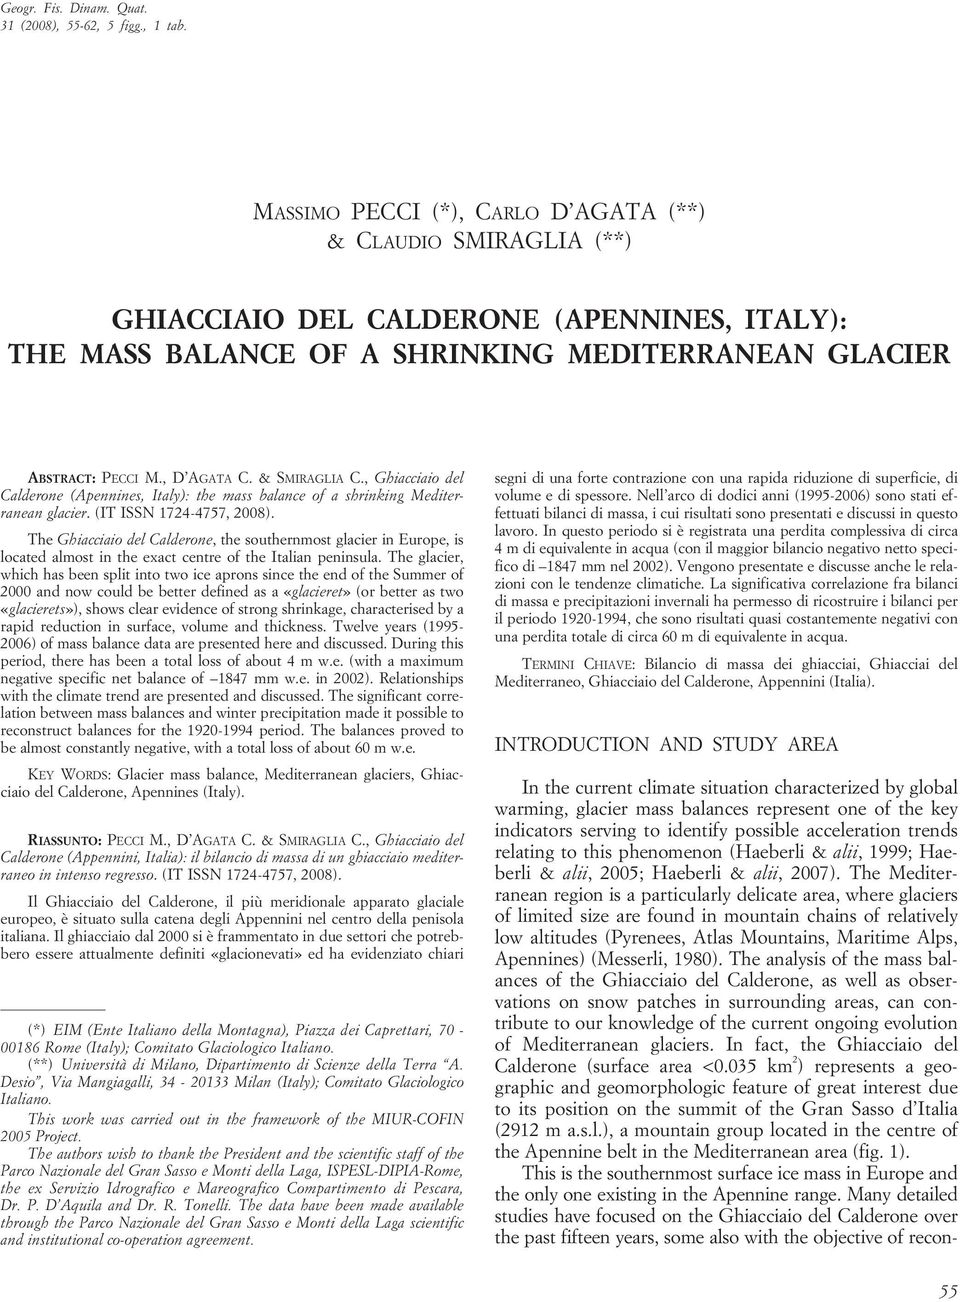 & SMIRAGLIA C., Ghiacciaio del Calderone (Apennines, Italy): the mass balance of a shrinking Mediterranean glacier. (IT ISSN 1724-4757, 2008).